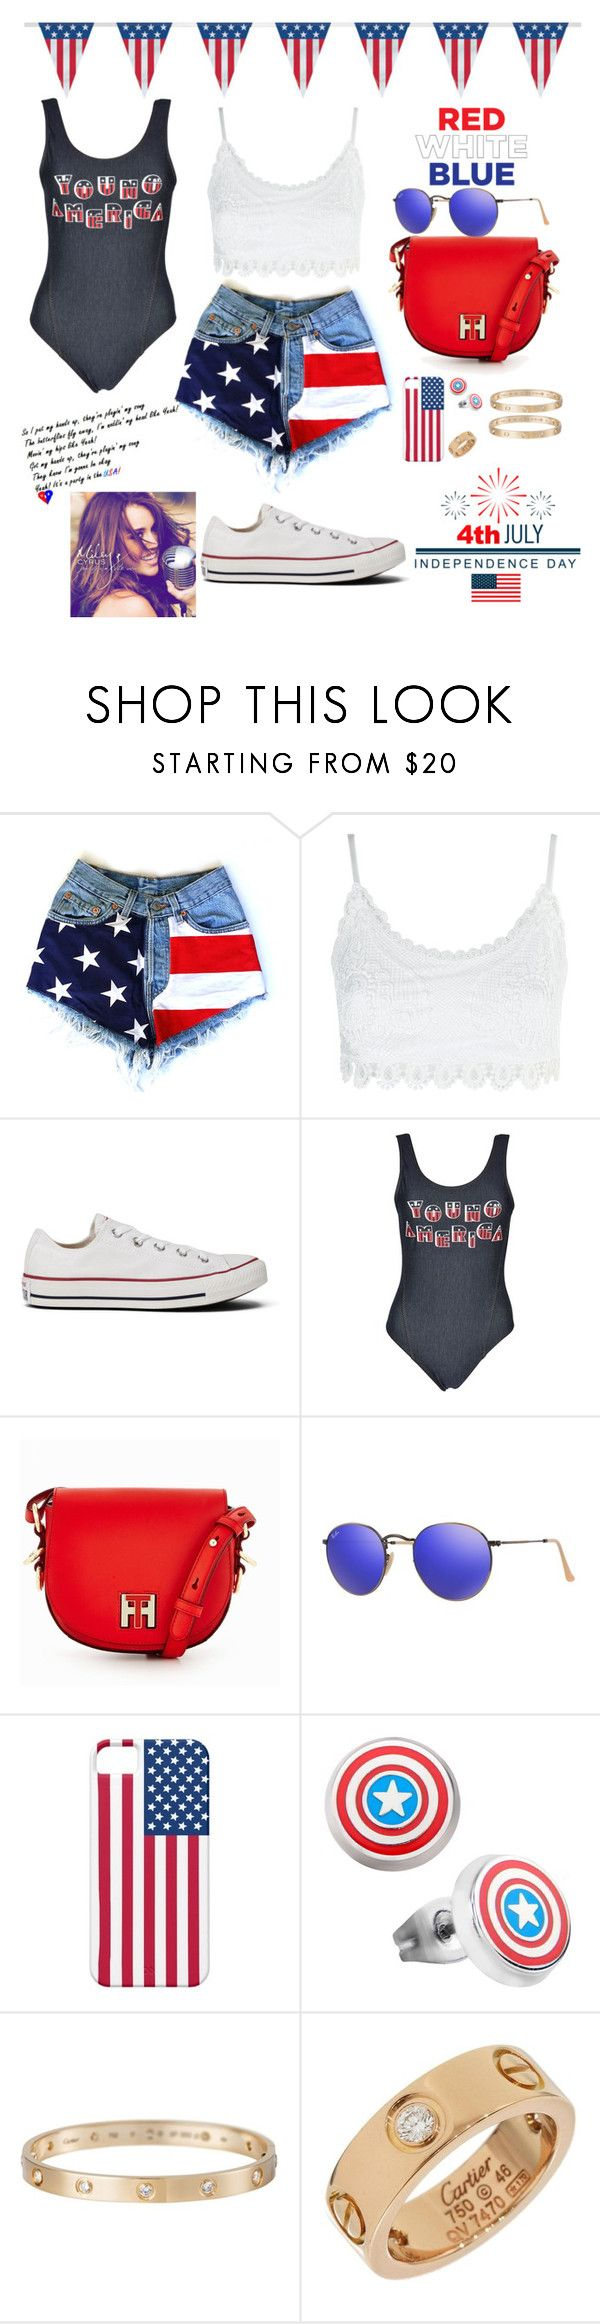 """""""It's A Party In The USA"""" by valenlss ❤ liked on Polyvore featuring Topshop, Converse, Tommy Hilfiger, Ray-Ban, Marvel, Cartier and Cyrus"""